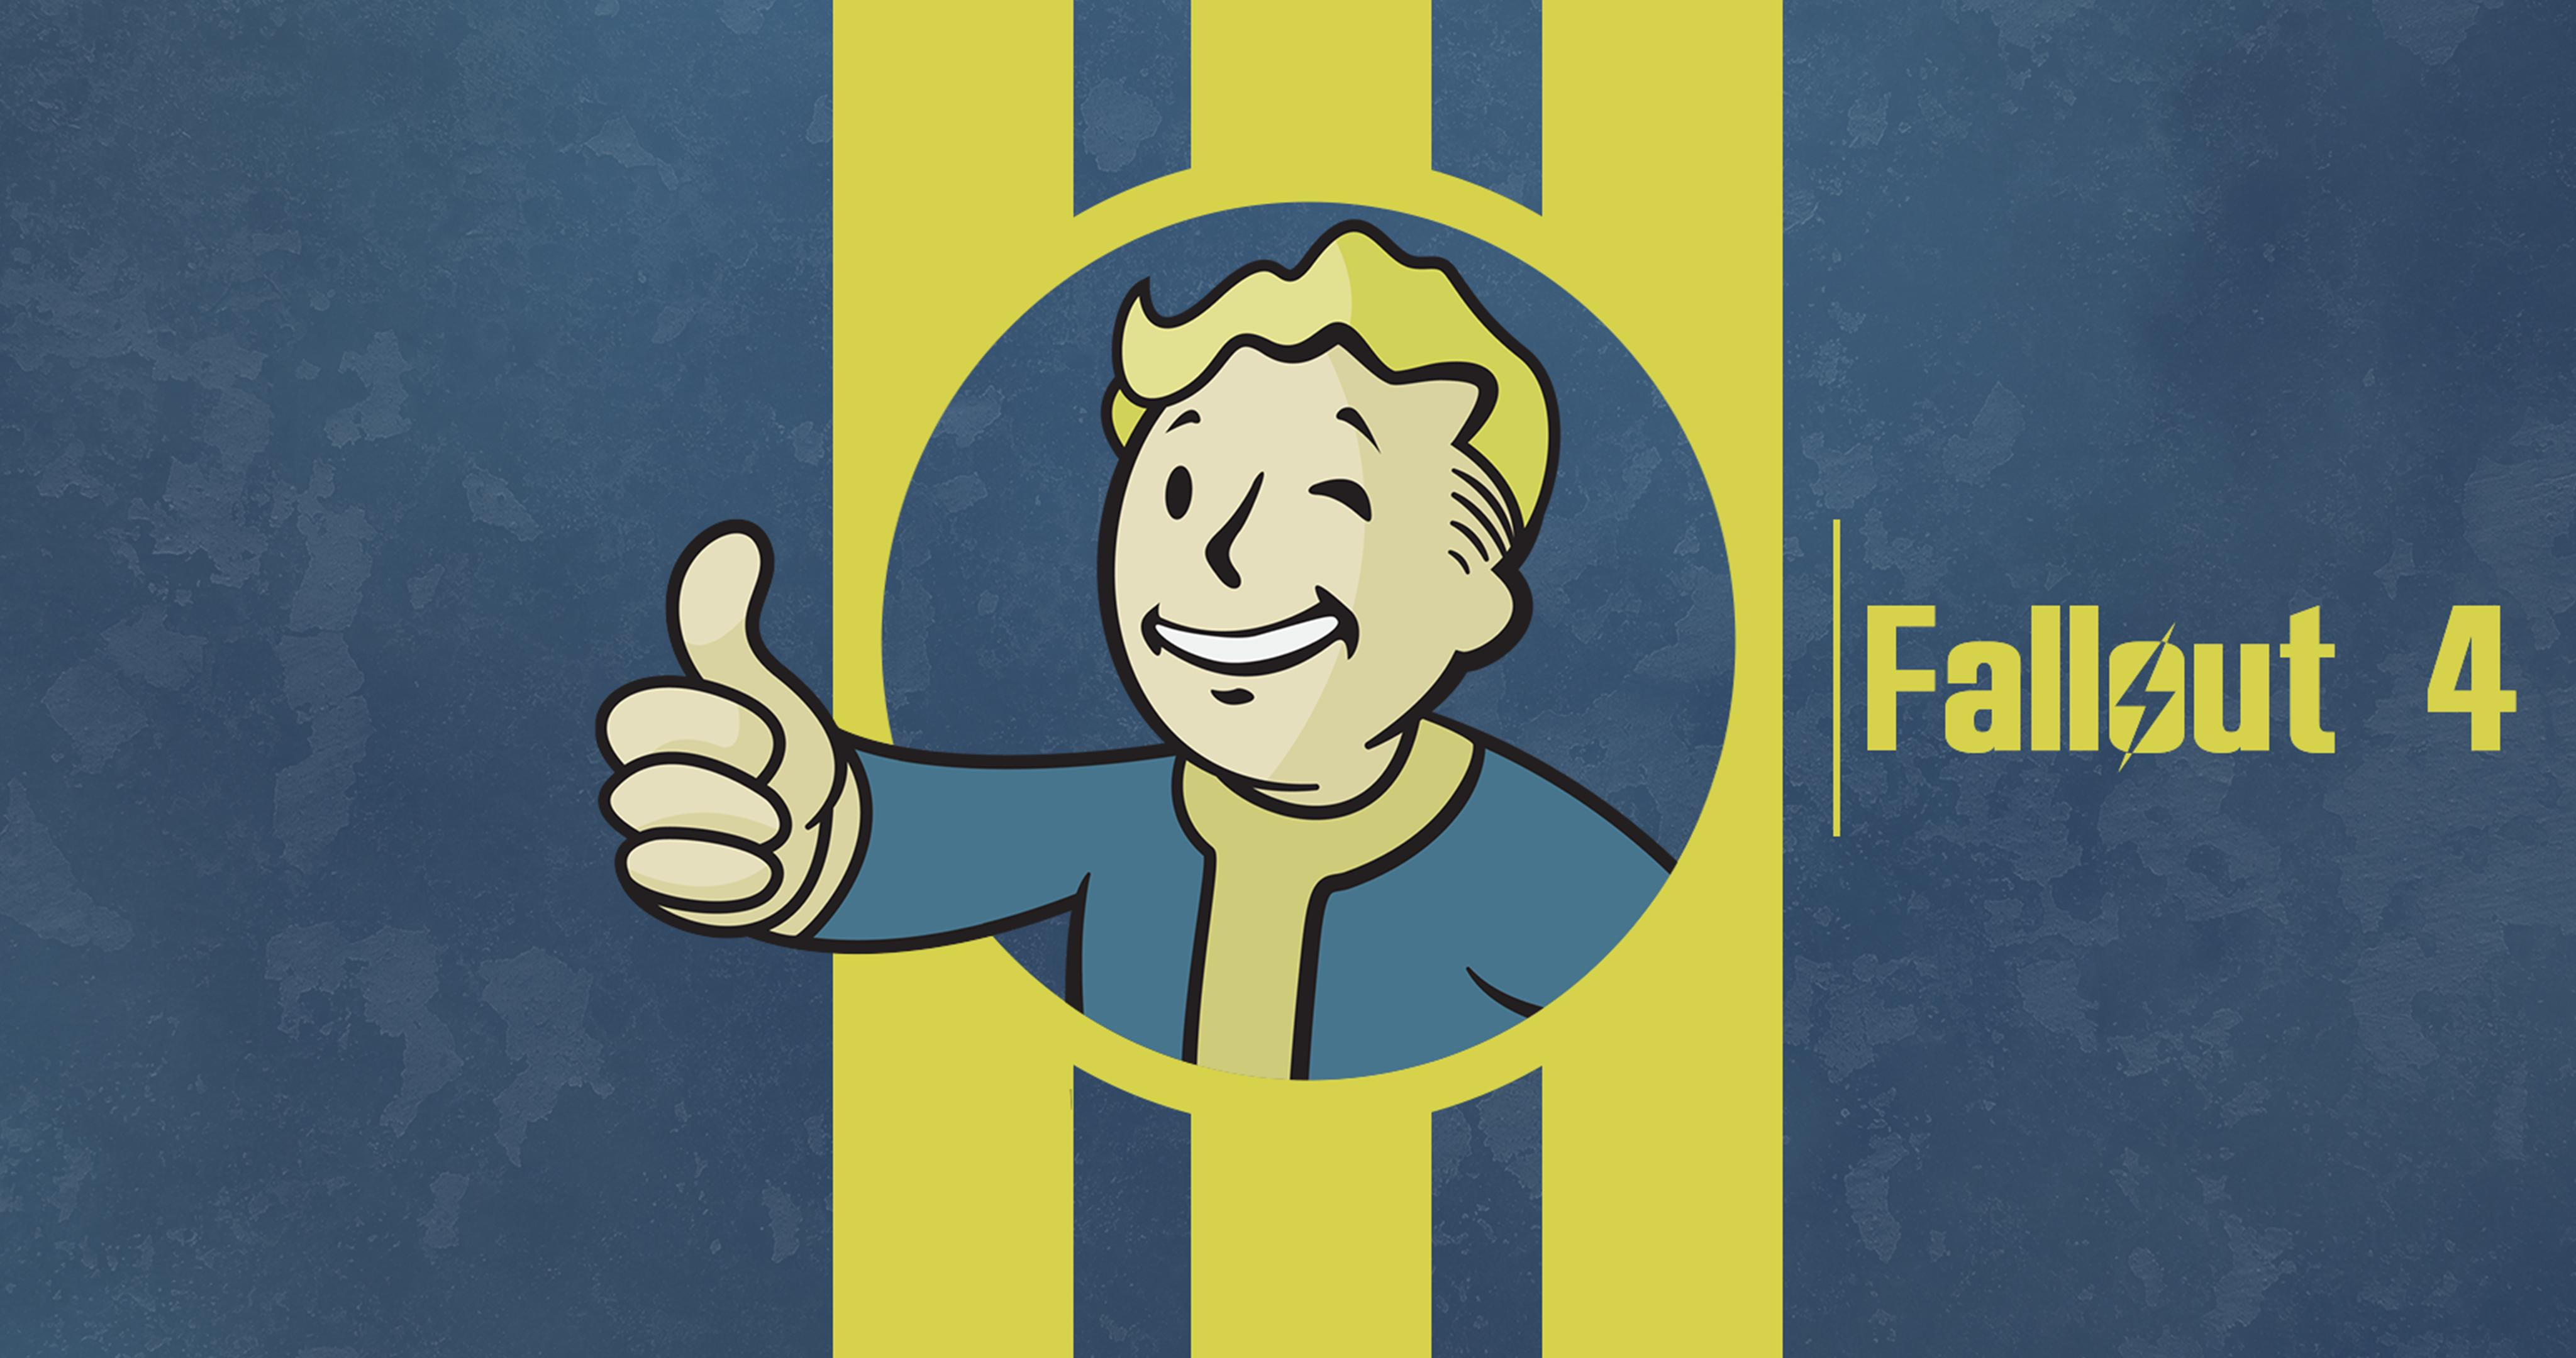 Fallout vault boy clipart hd image library Fallout vault boy clipart hd - ClipartFest image library